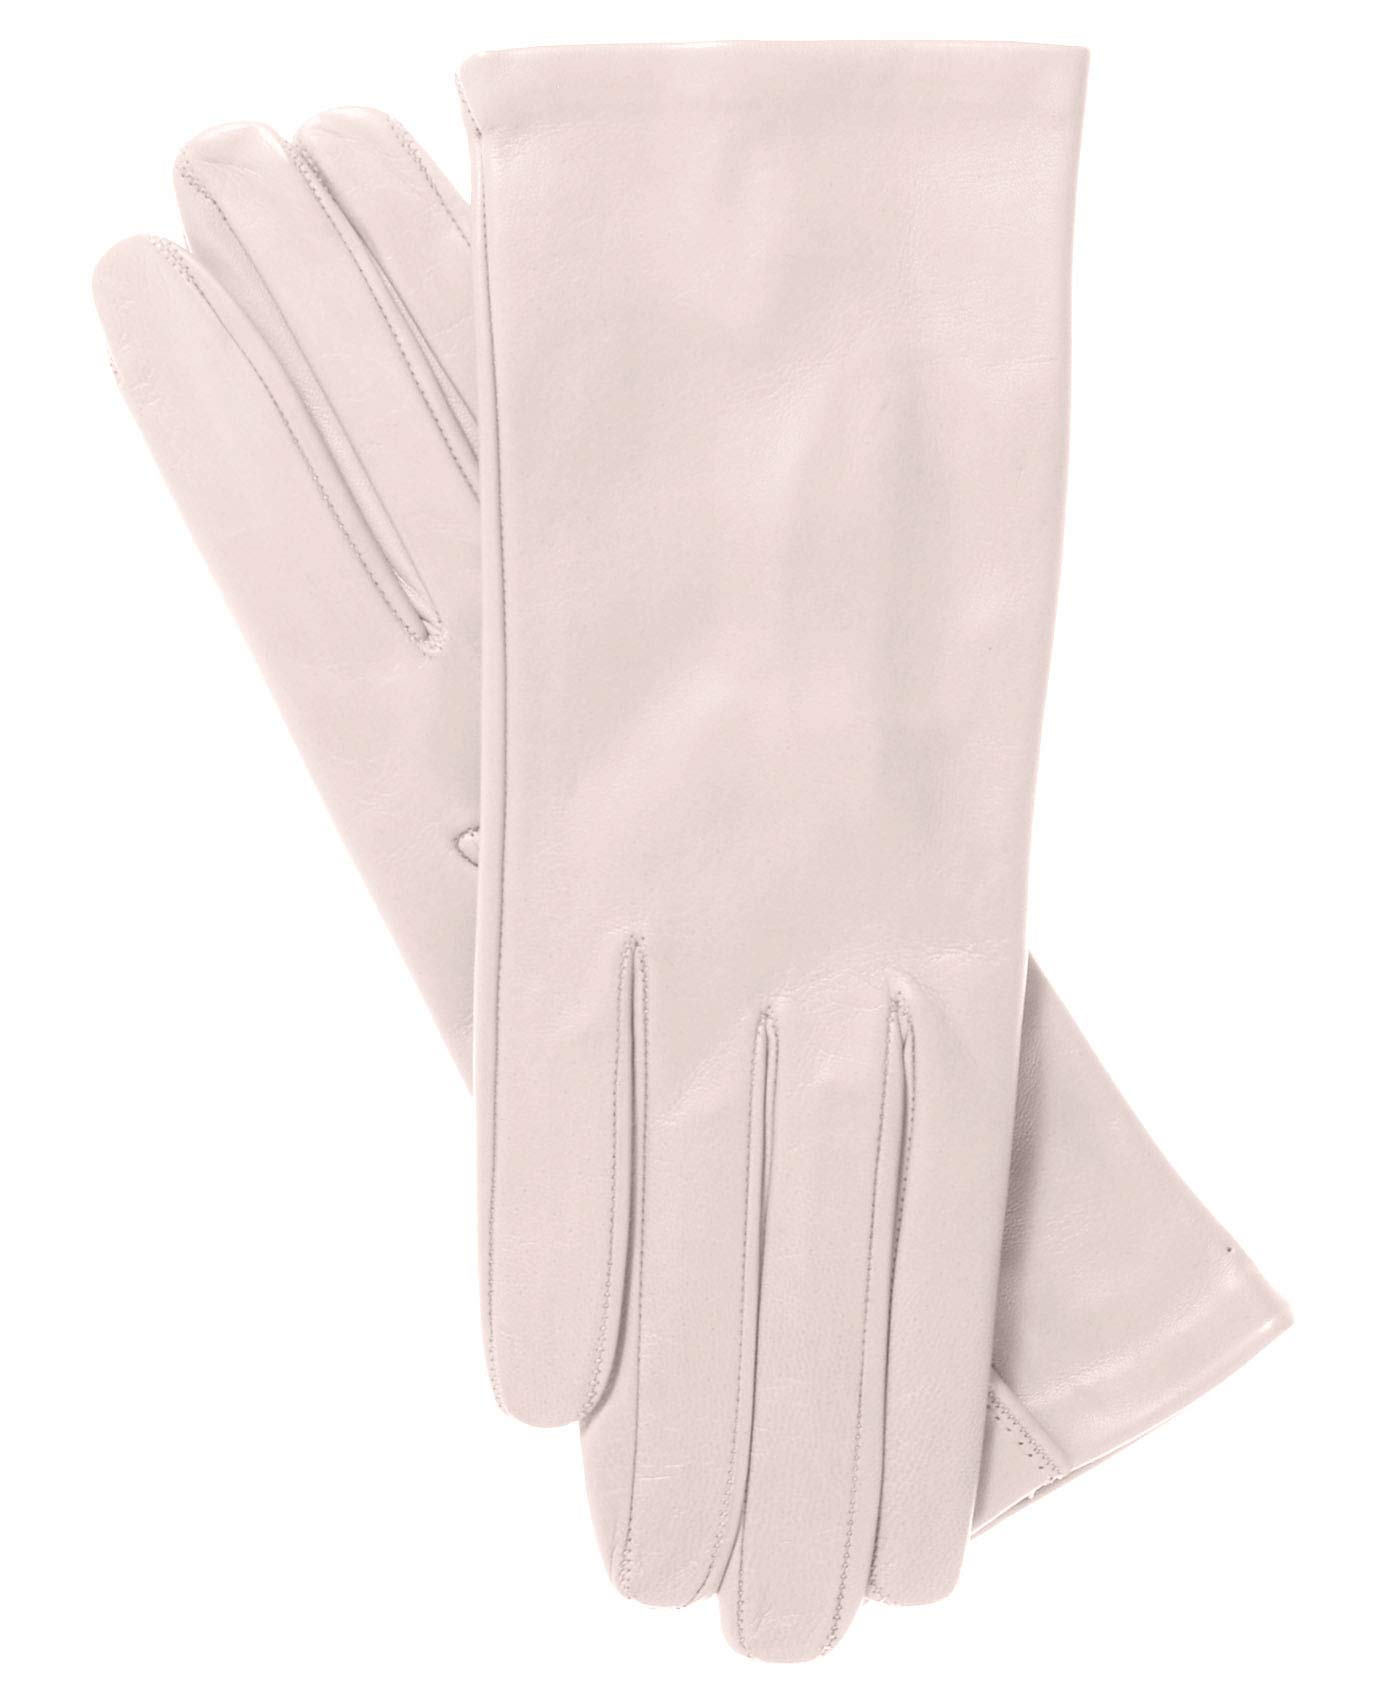 Fratelli Orsini Women's Italian Silk Lined Leather Gloves Size 7 1/2 Color 8-Rosewater by Fratelli Orsini